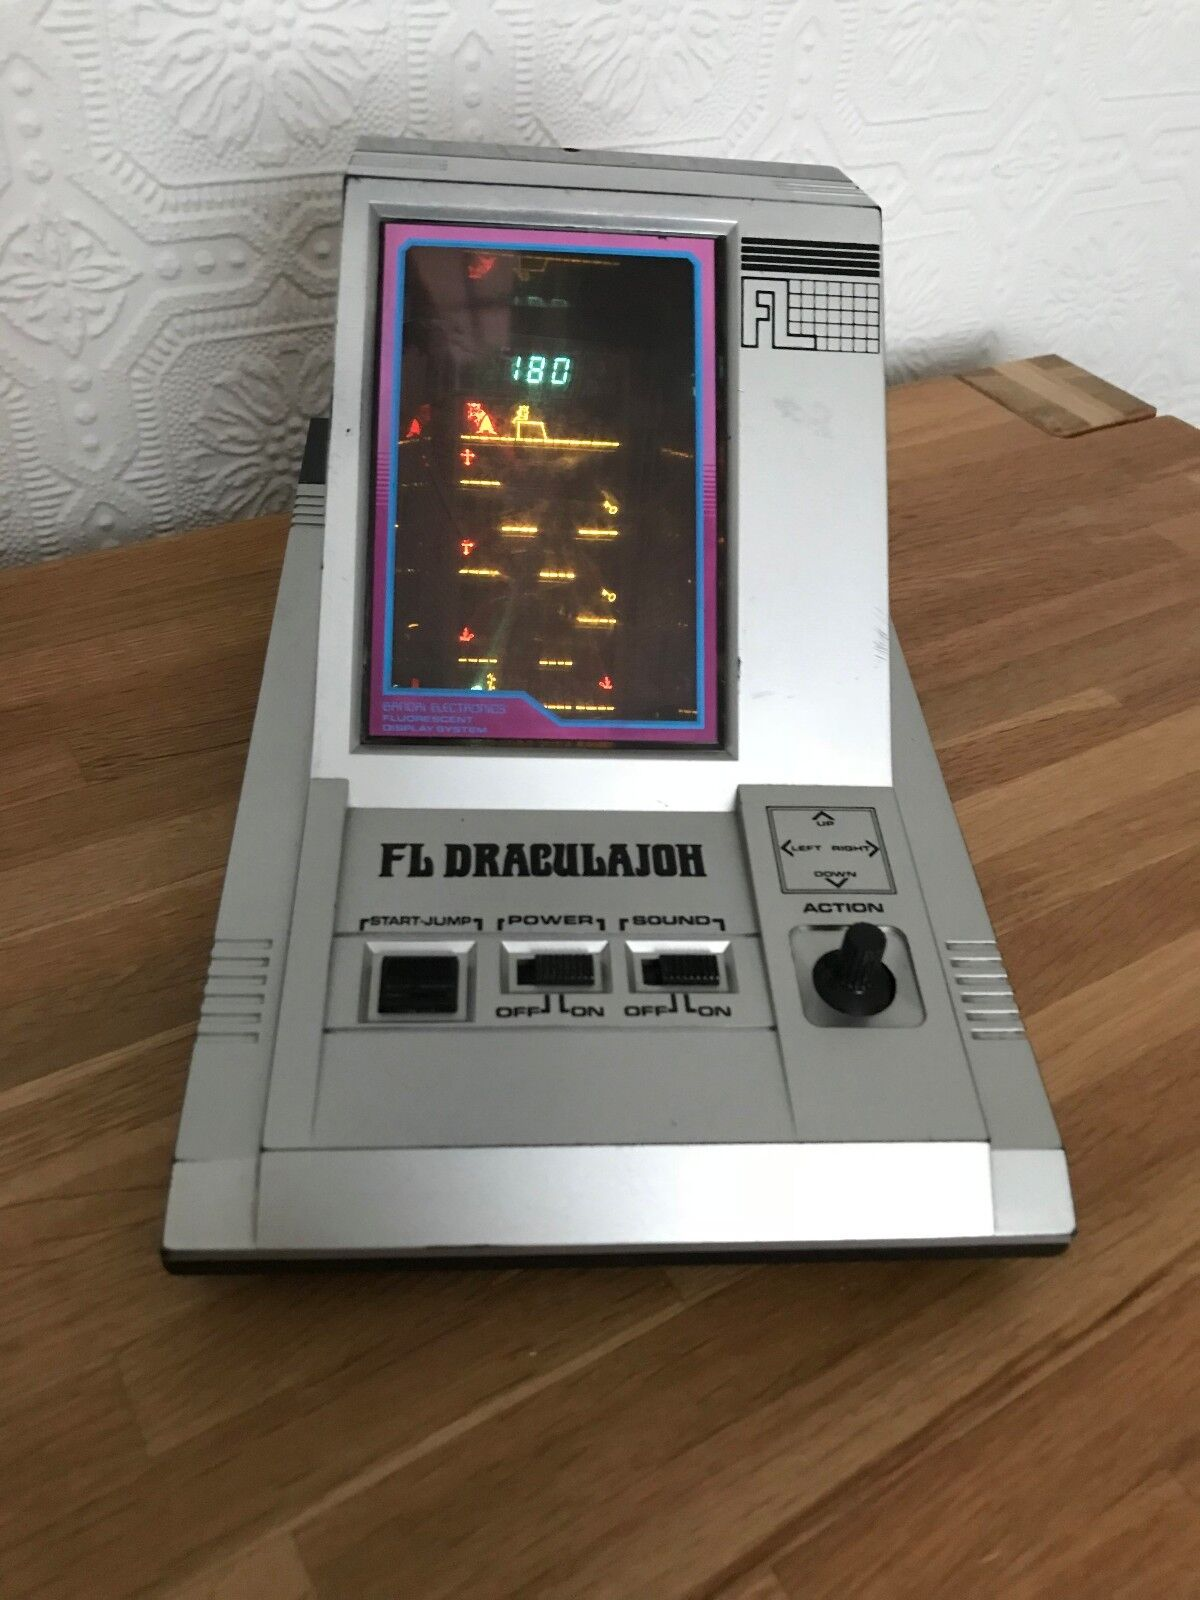 Extremely Rare Bandai FL Draculajoh Vintage 1982 LSI Tabletop Electronic Game